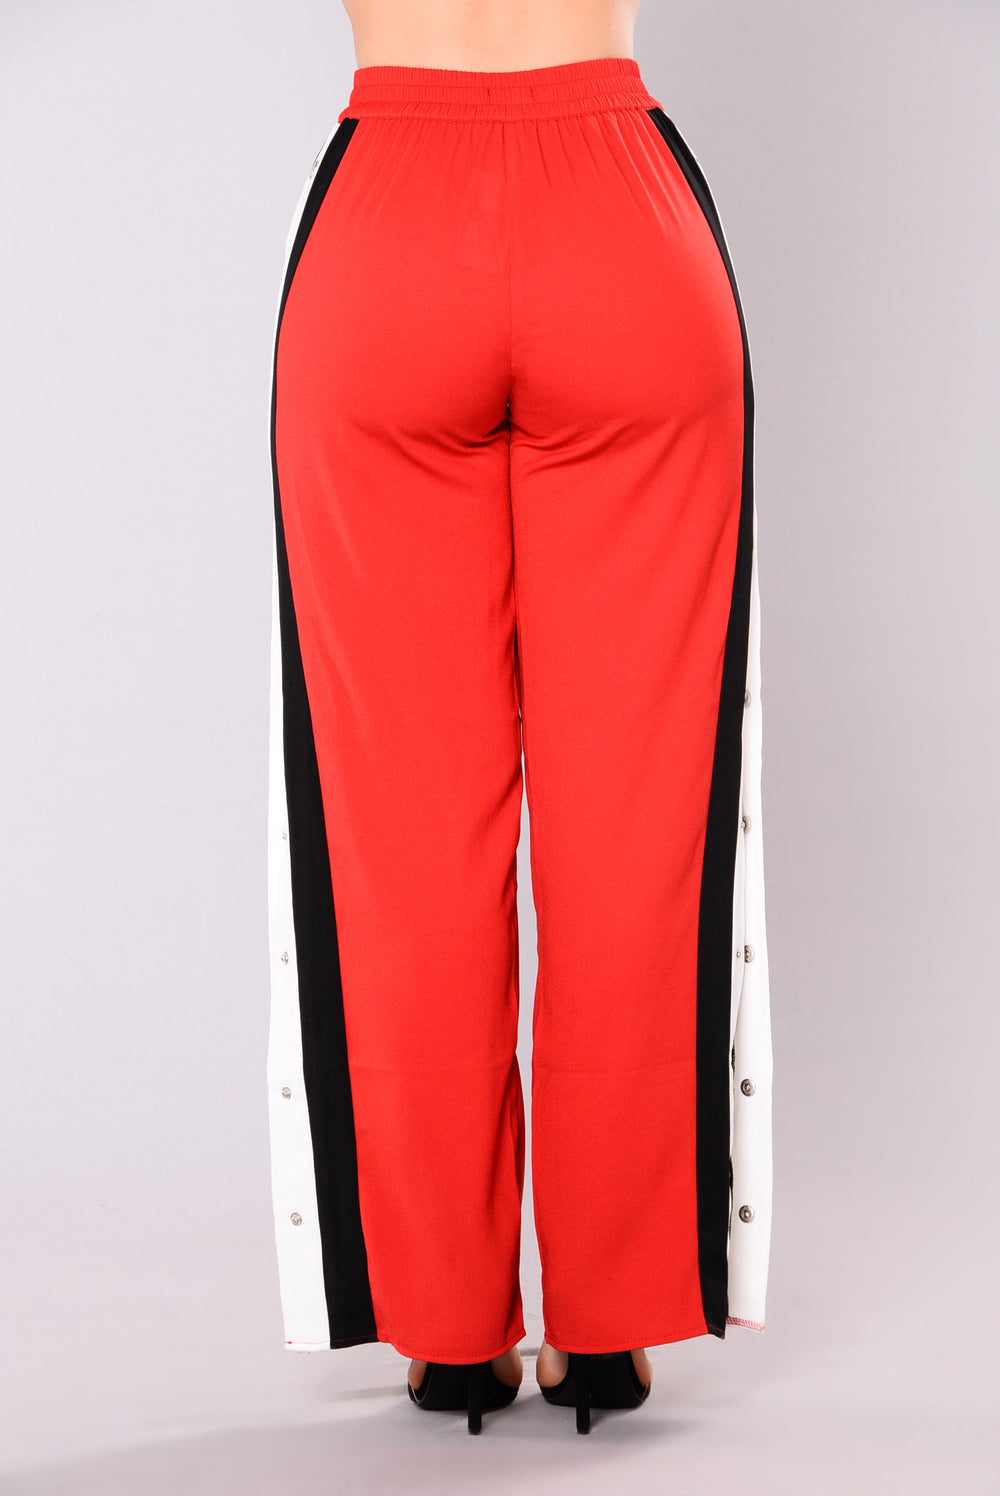 Electro Magnetic Pants - Red/Black